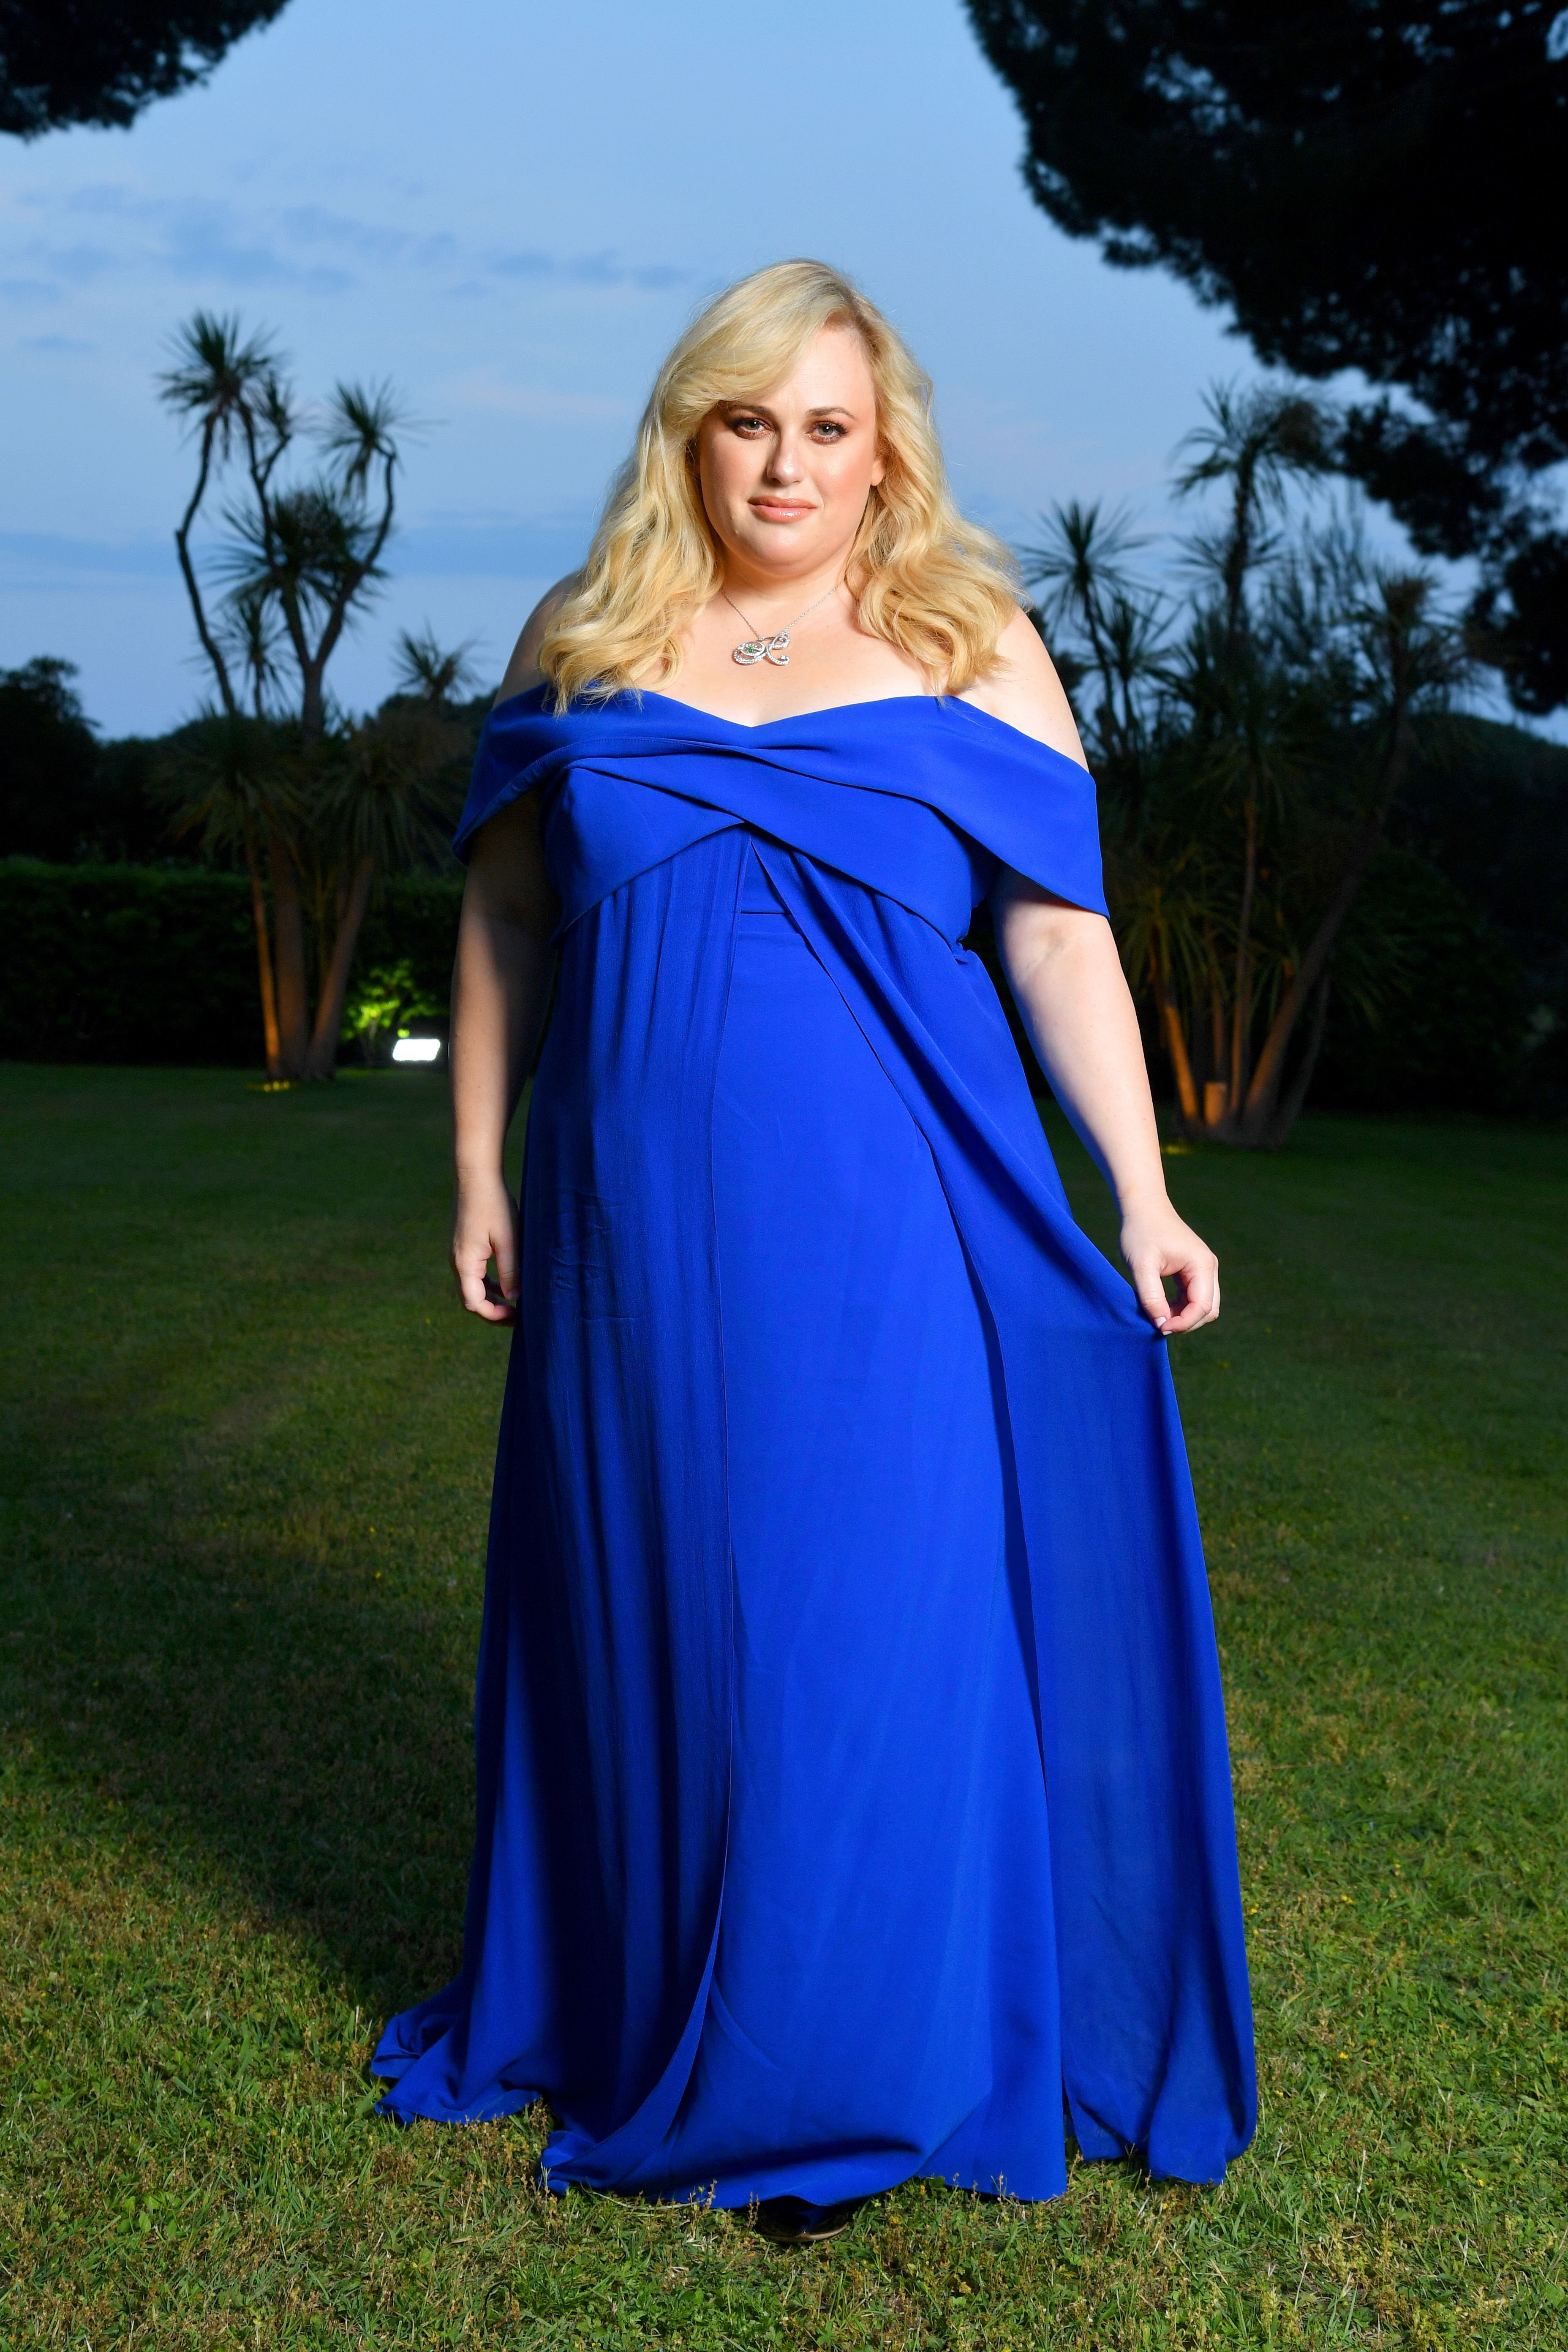 Rebel Wilson atthe amfAR Cannes Galaat Hotel du Cap-Eden-Roc on May 23, 2019, in Cap d'Antibes, France   Photo:Pascal Le Segretain/amfAR/Getty Images